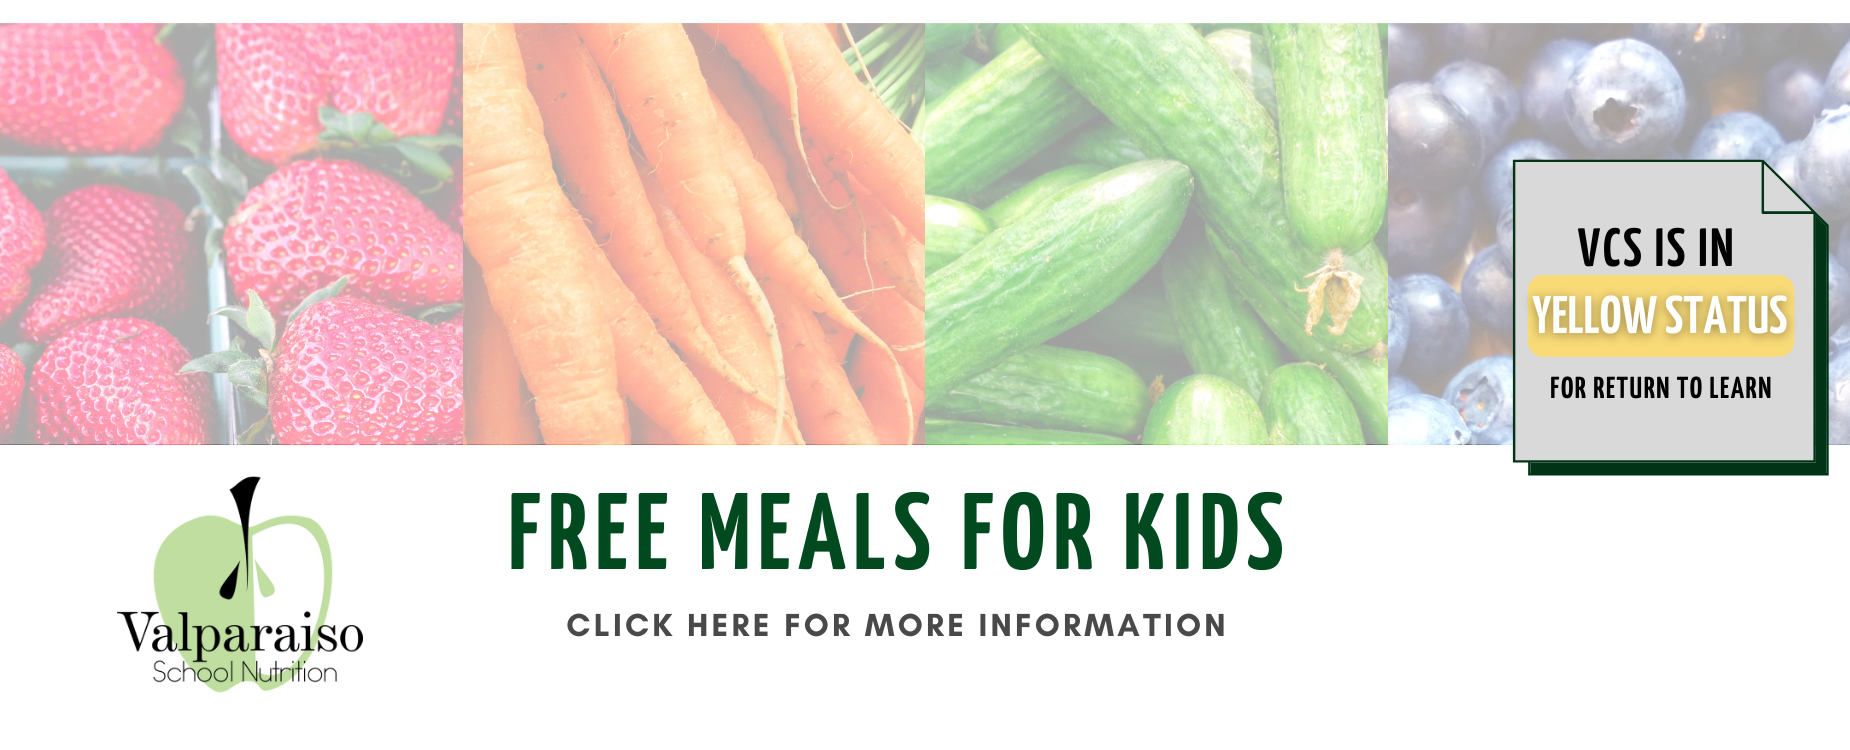 Free Meals for Kids banner